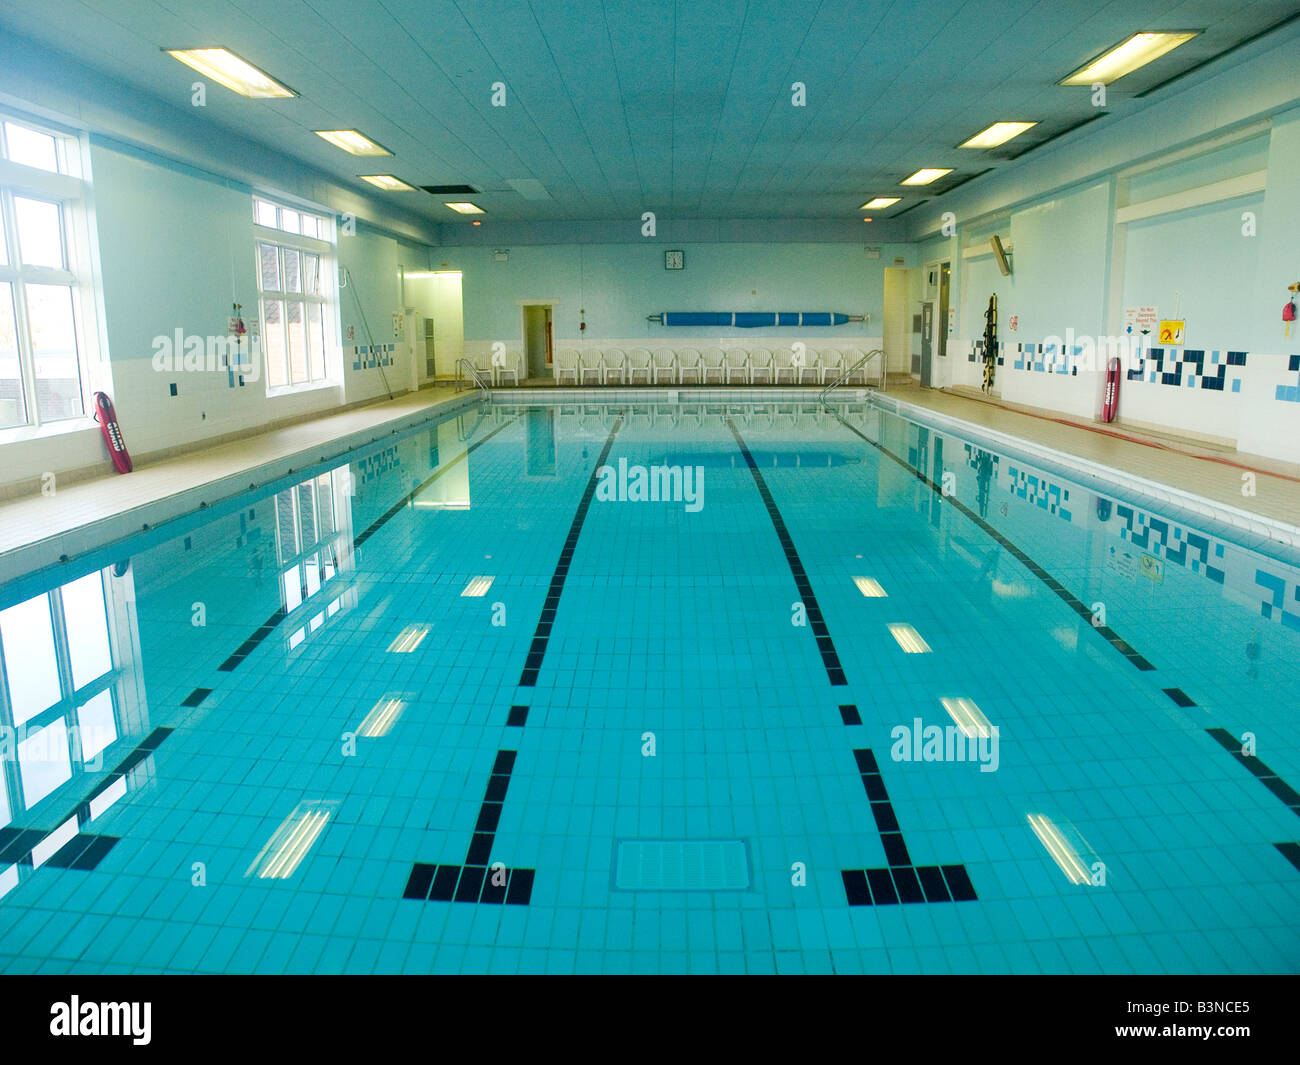 A Public Swimming Pool At A Local Council Run Leisure Centre Stock Photo Royalty Free Image